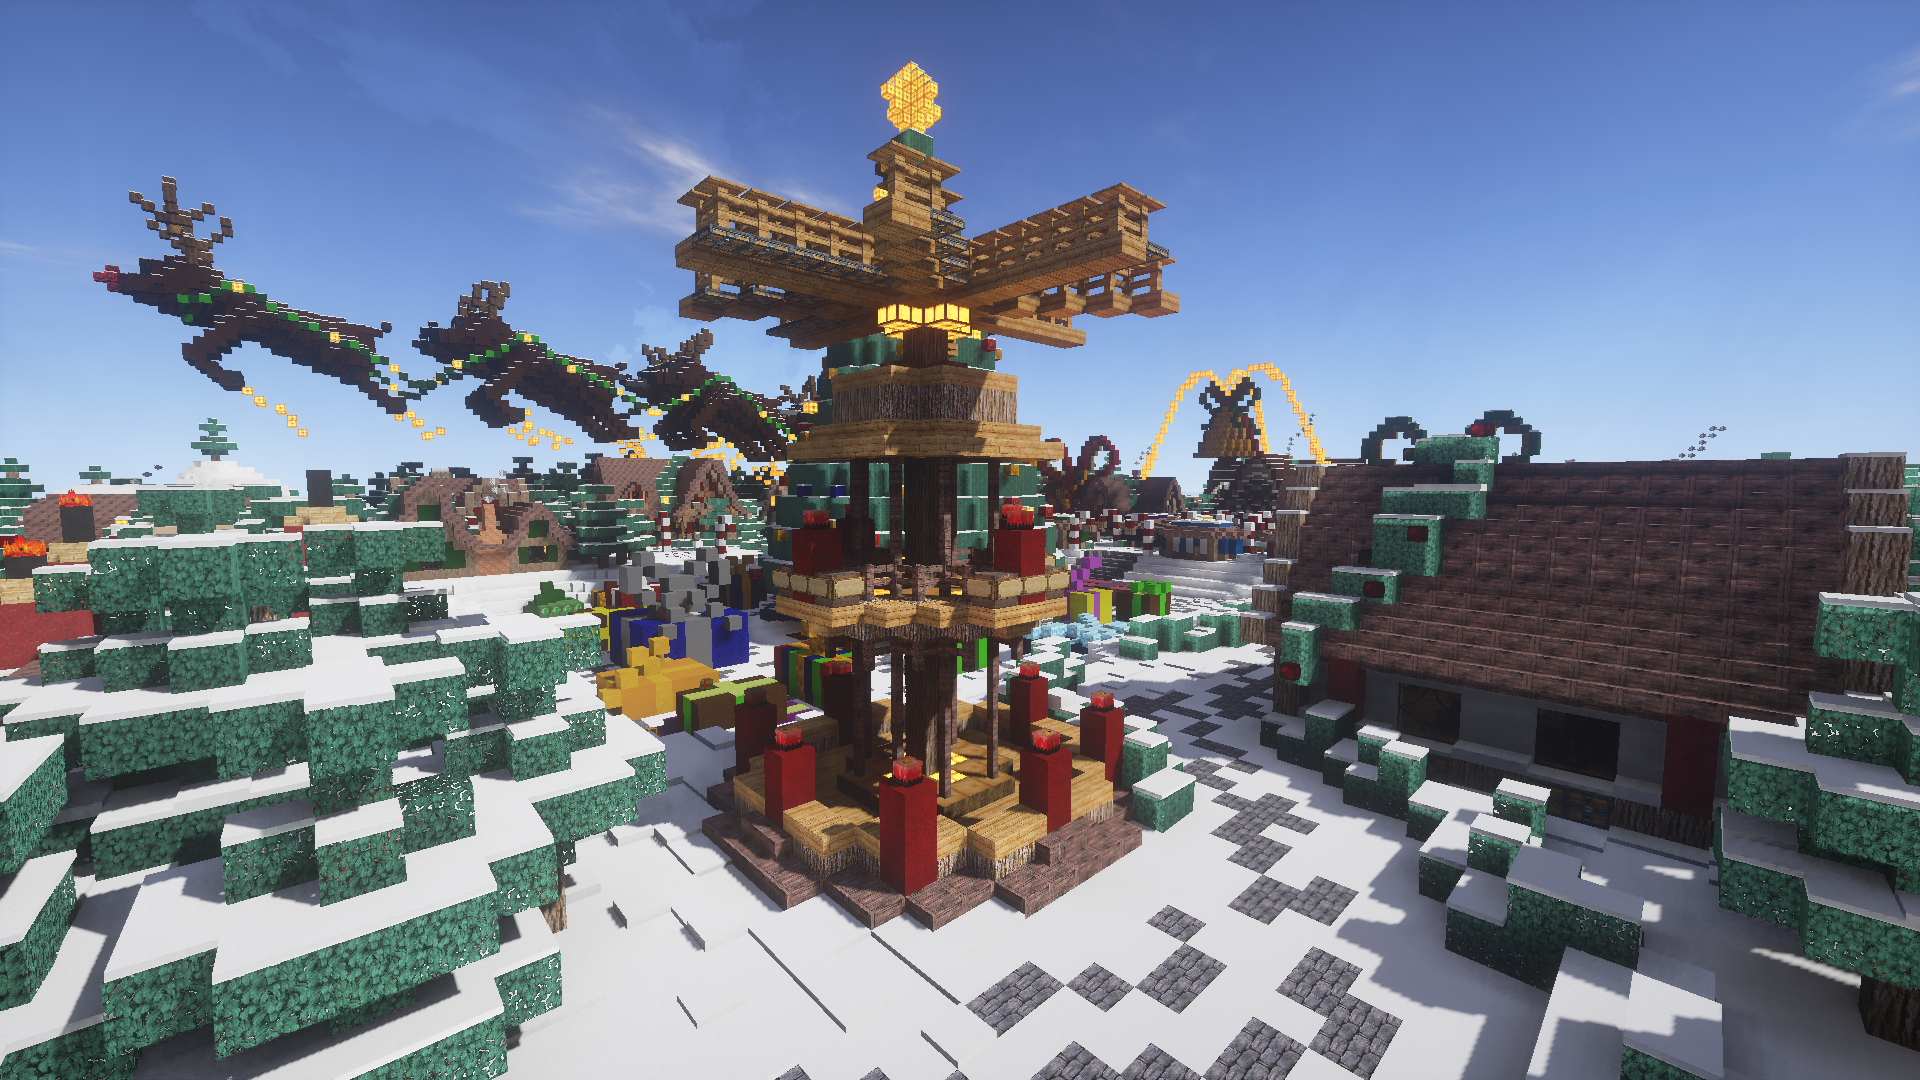 Weihnachtskalender Minecraft.Weihnachtsmarkt Adventskalender Pirates Of Minecraft